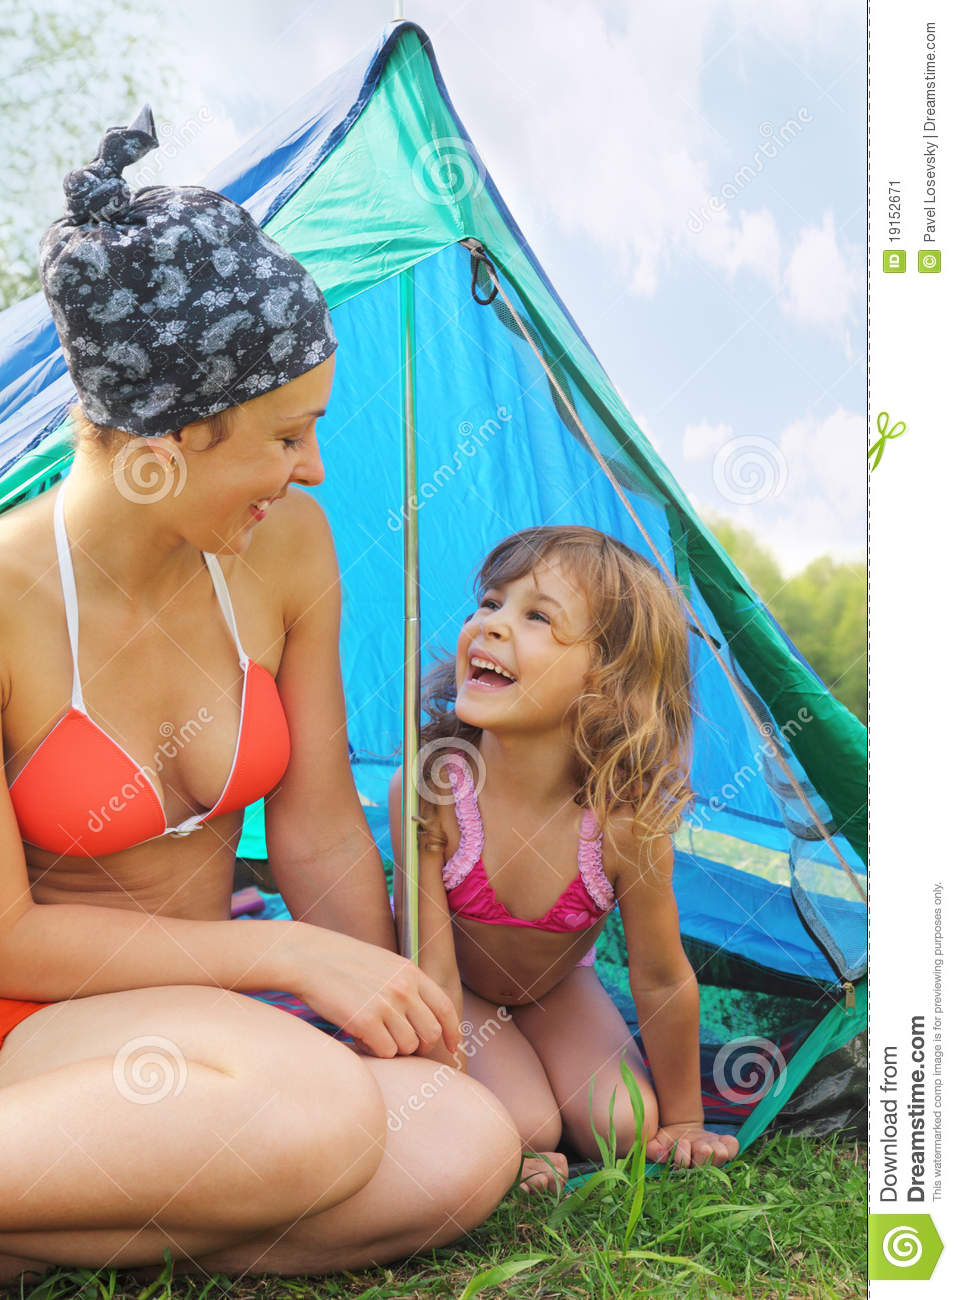 Photo and video family nudism and naturism  Страница 24